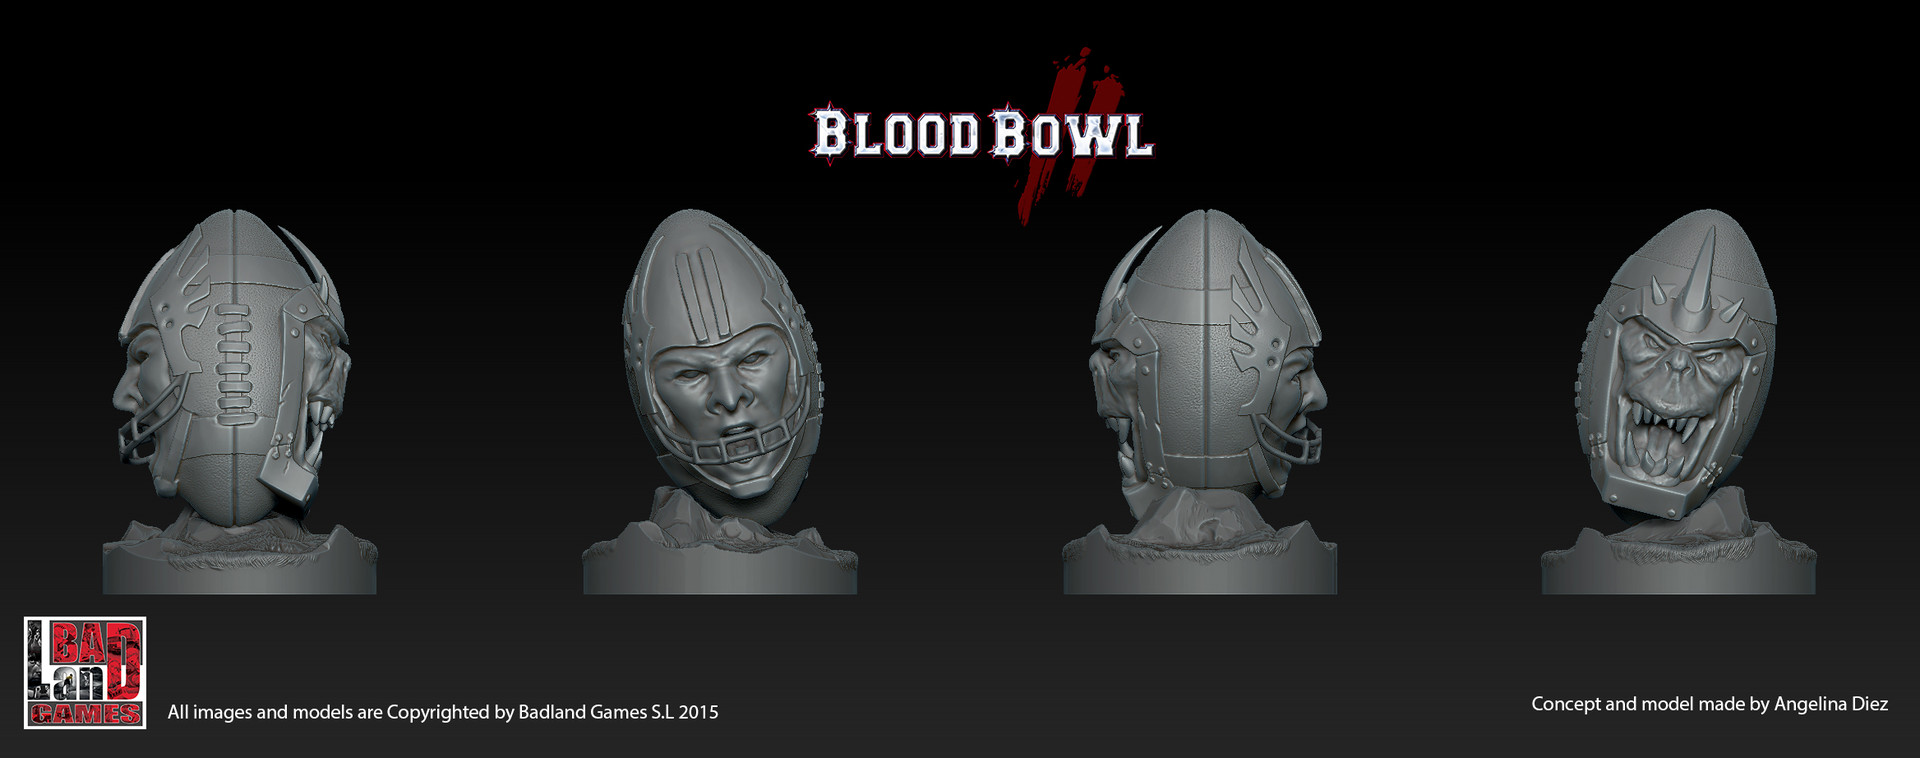 Angelina diez bloodbowl ball02